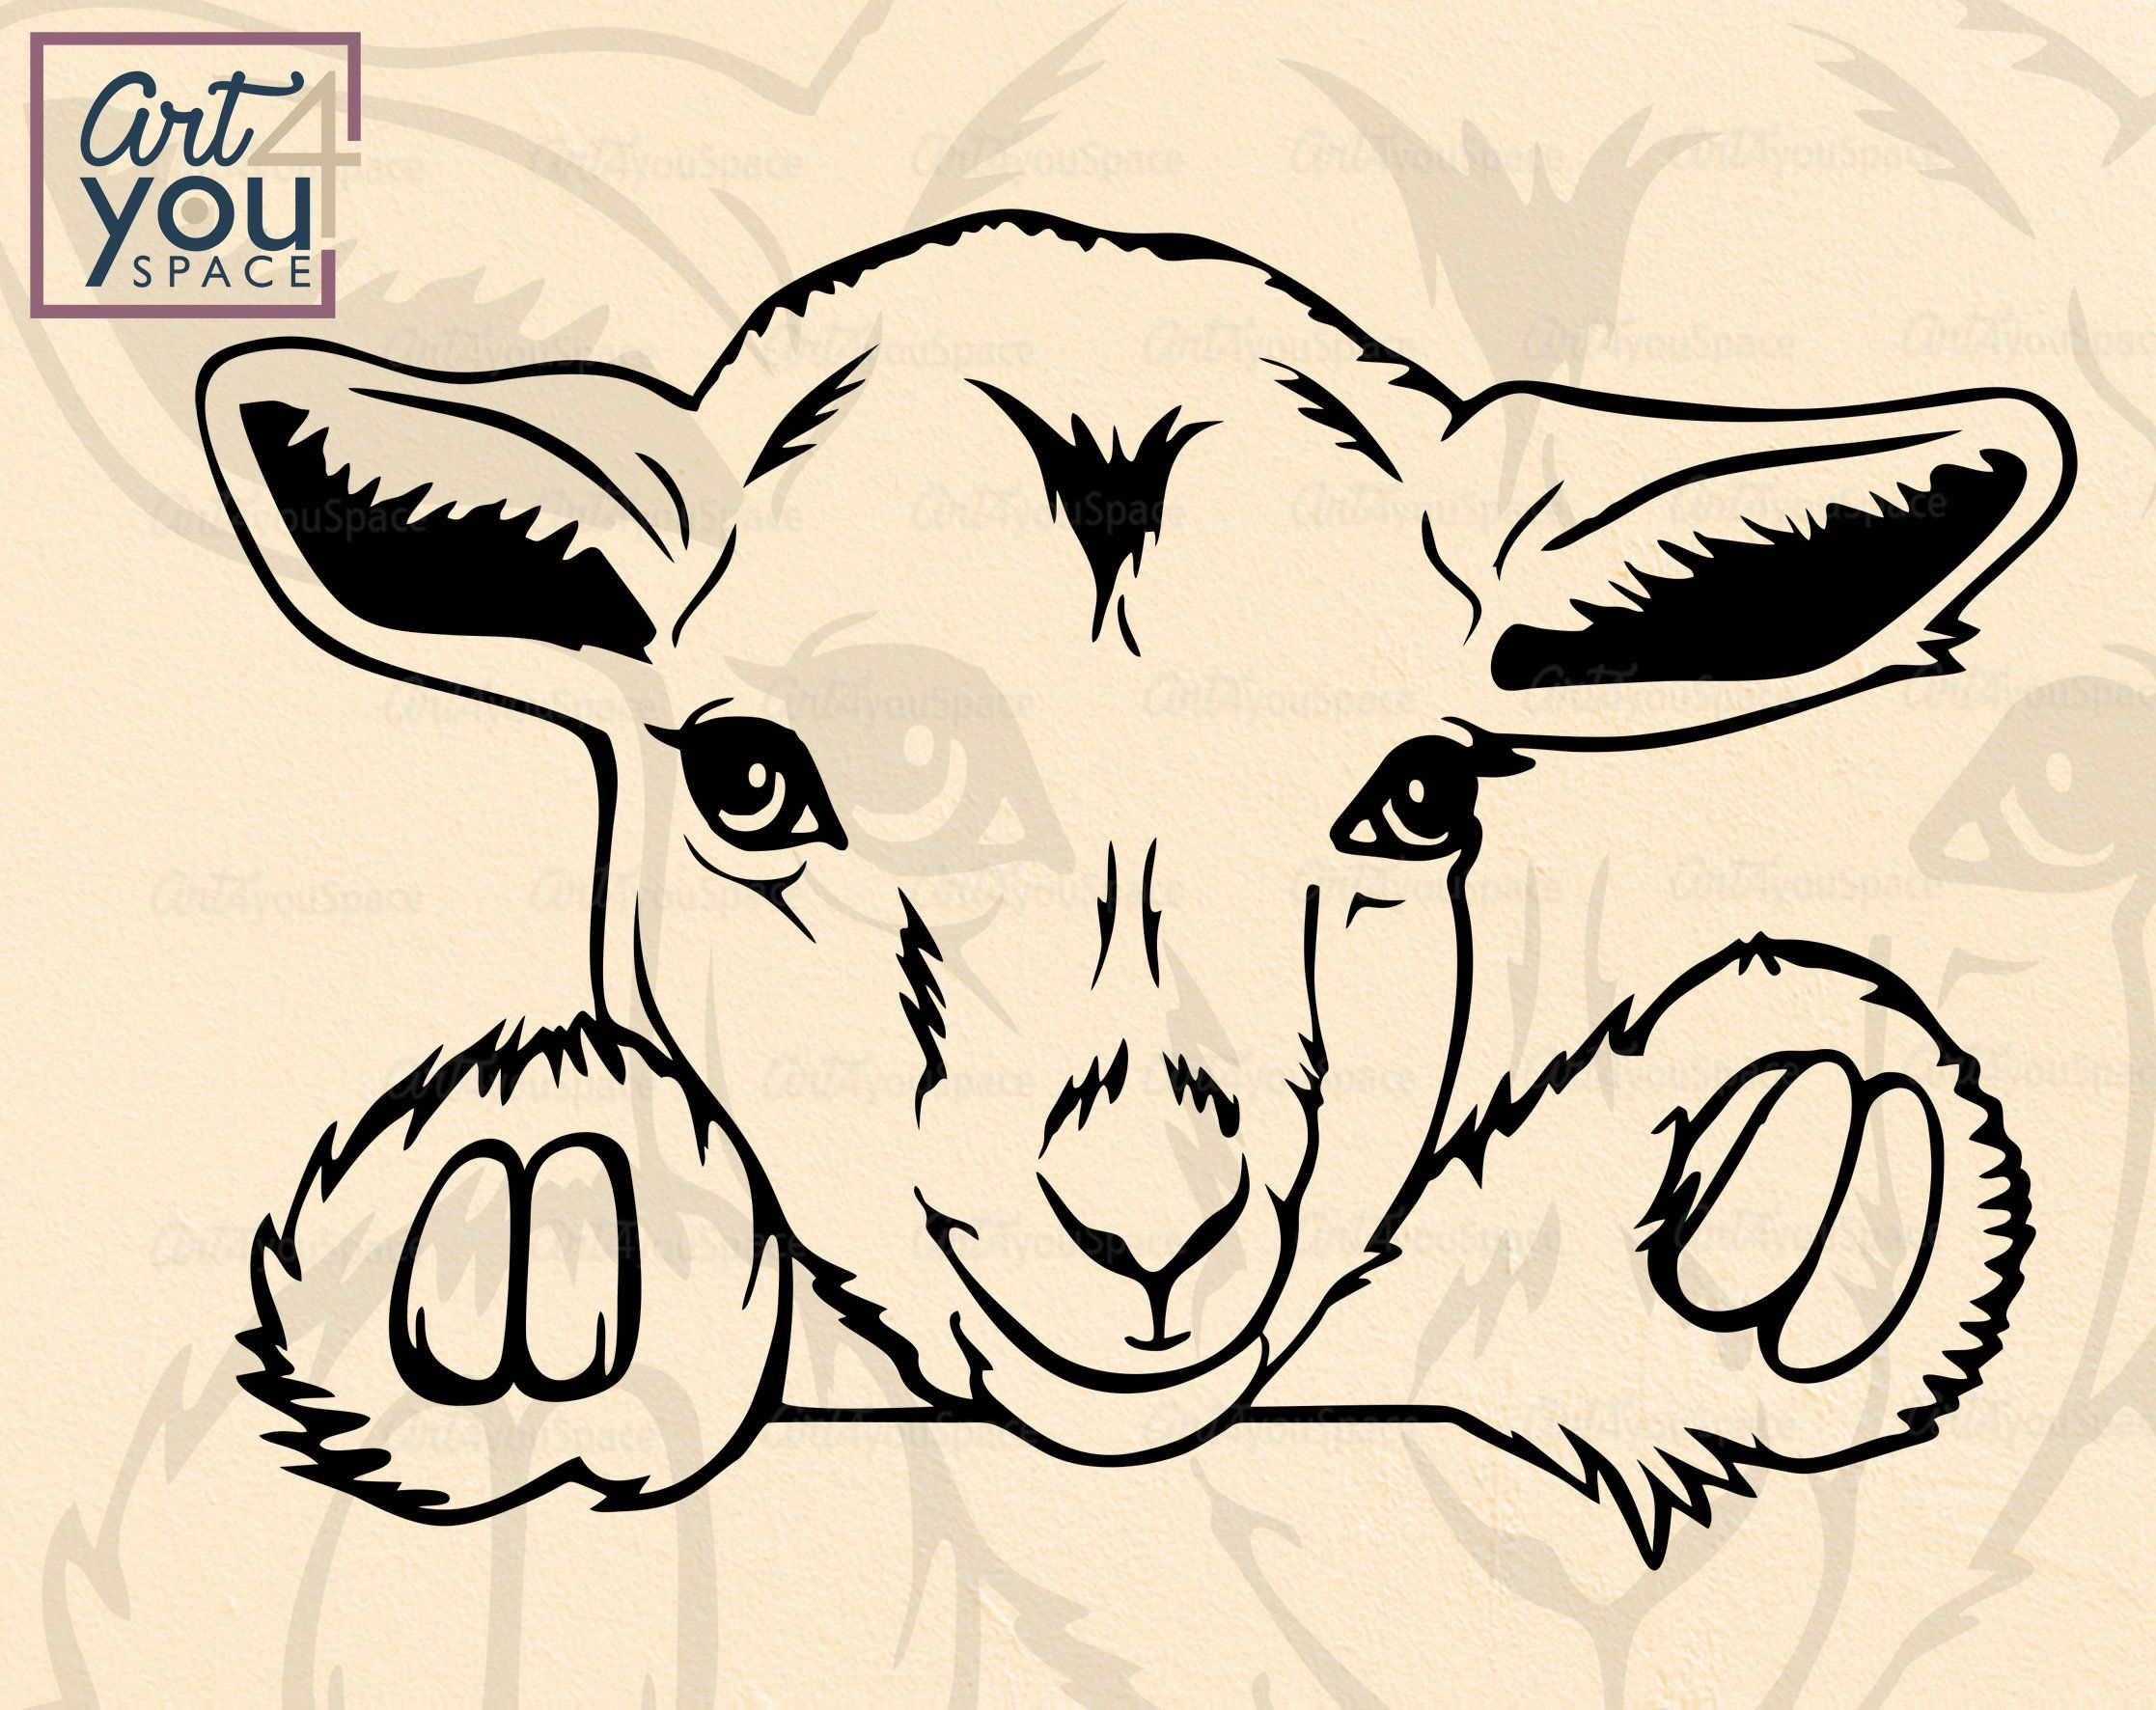 Pygmy Goat Kid Svg Files For Cricut Pet Svg Cute Animal Etsy In 2021 Cute Animal Clipart Goat Paintings Animal Clipart